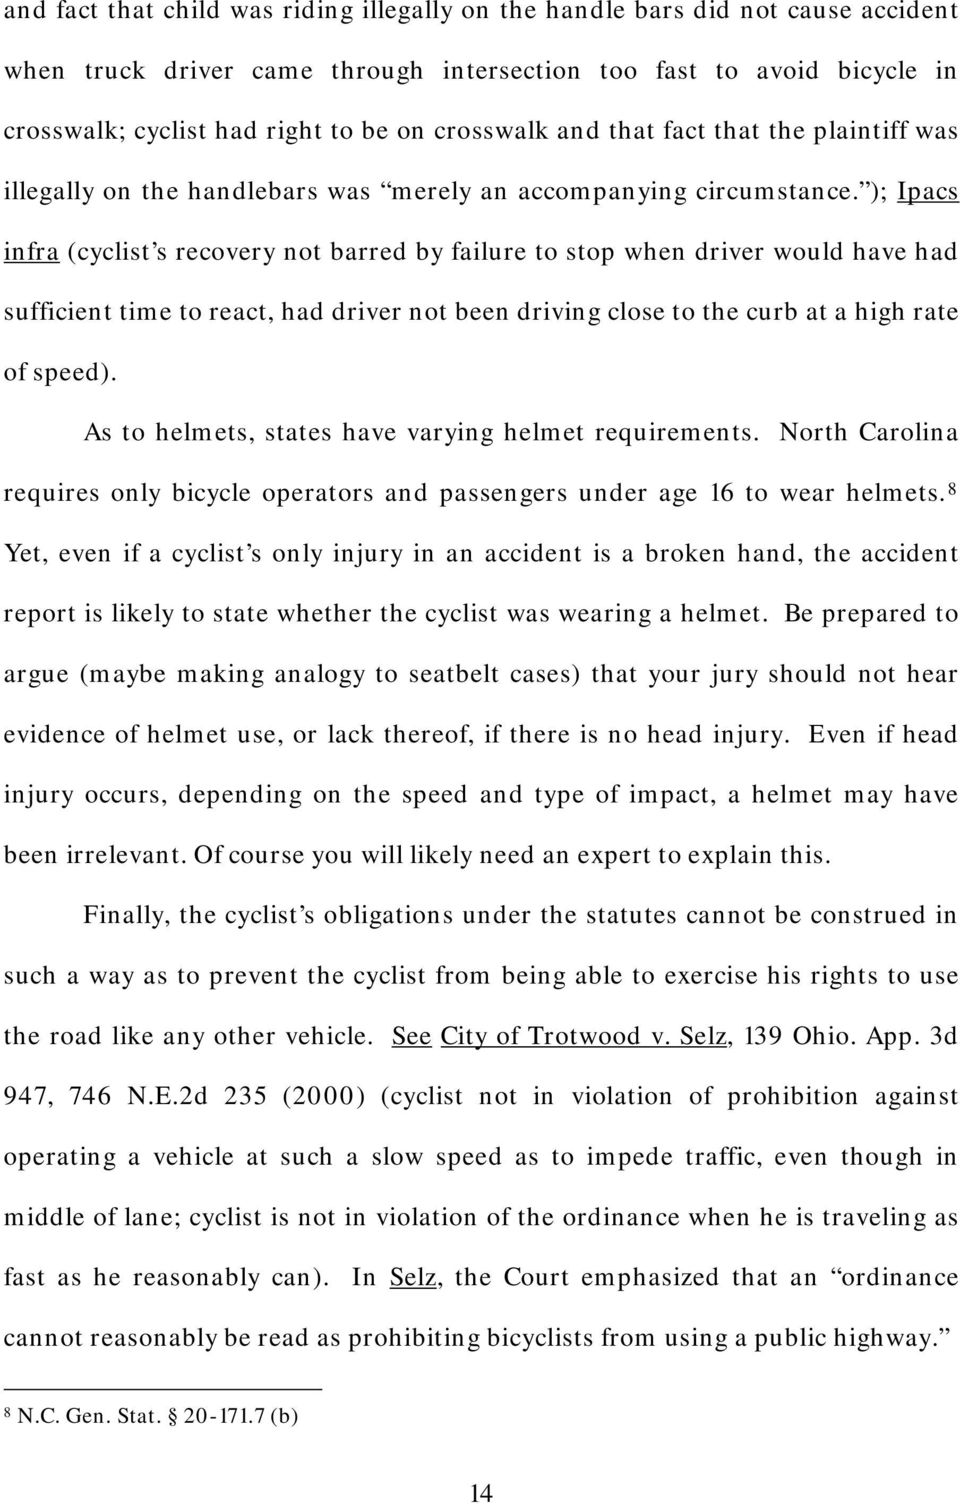 ); Ipacs infra (cyclist s recovery not barred by failure to stop when driver would have had sufficient time to react, had driver not been driving close to the curb at a high rate of speed).